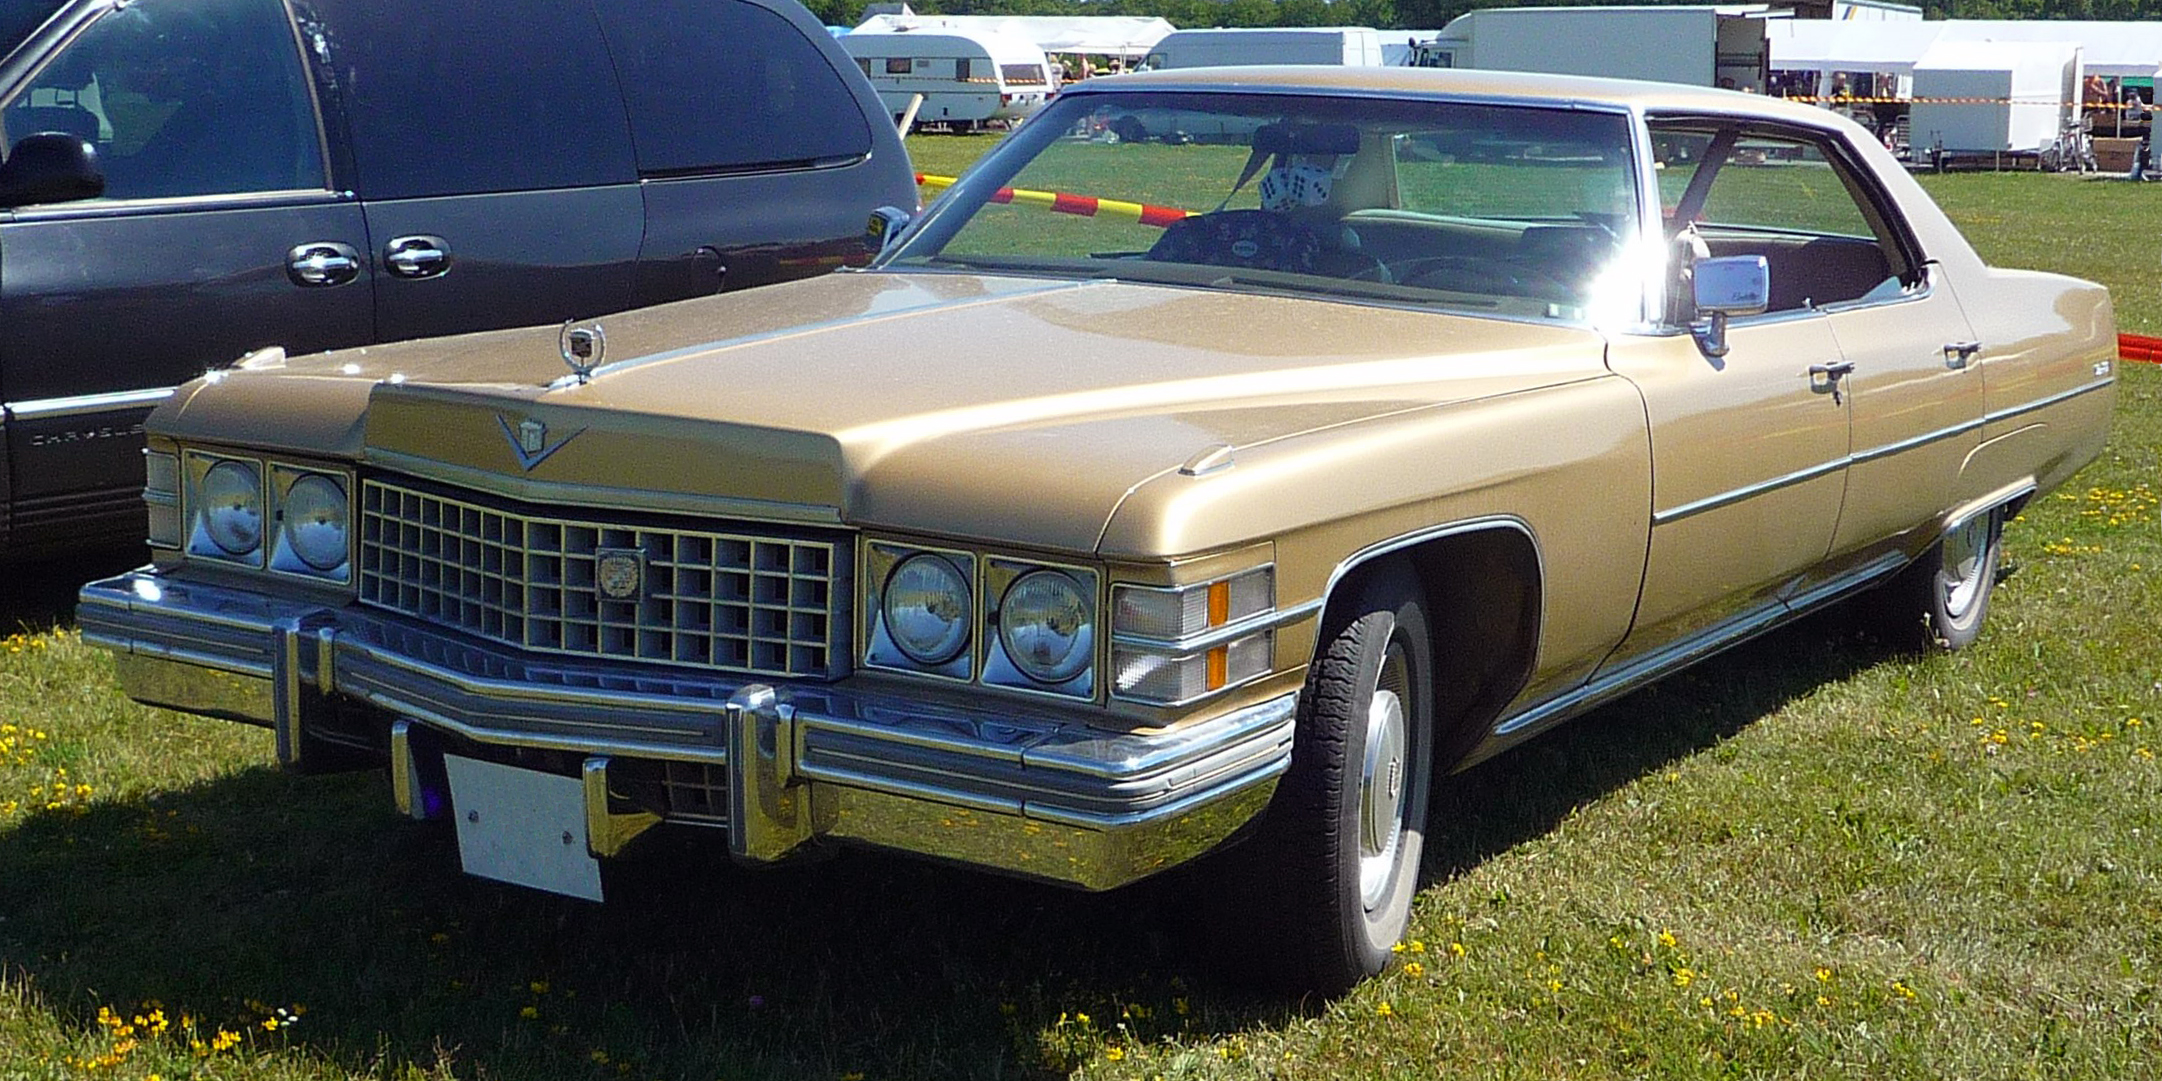 1974 Cadillac Eldorado In Houston Tx: Cadillac Deville Related Images,start 250